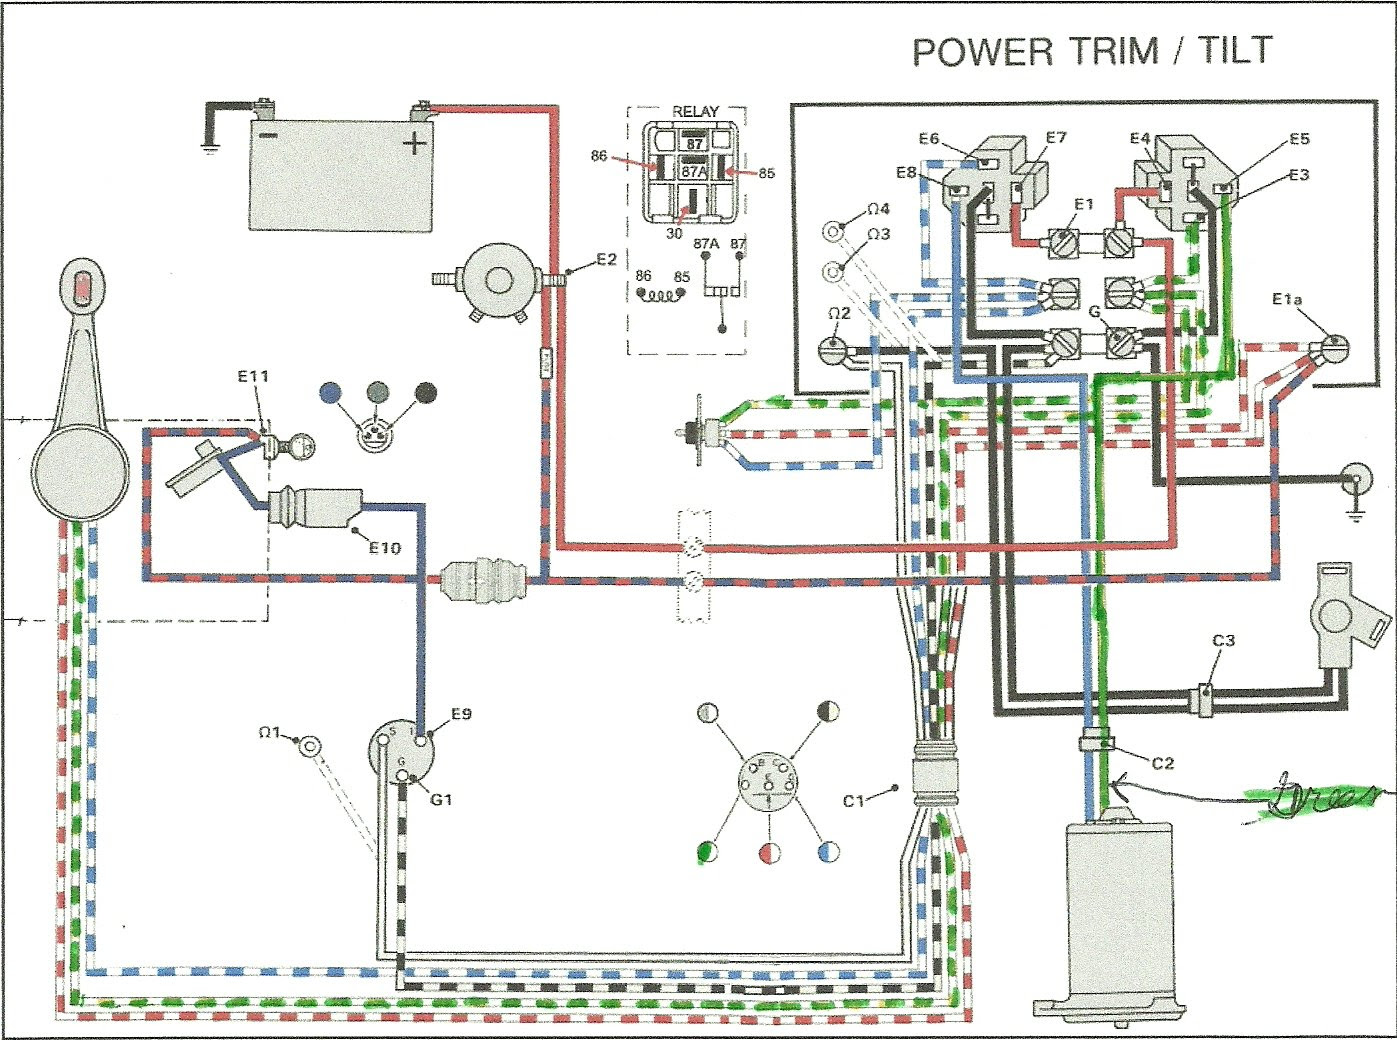 8b8 1989 Evinrude 50 Wiring Diagram Wiring Library